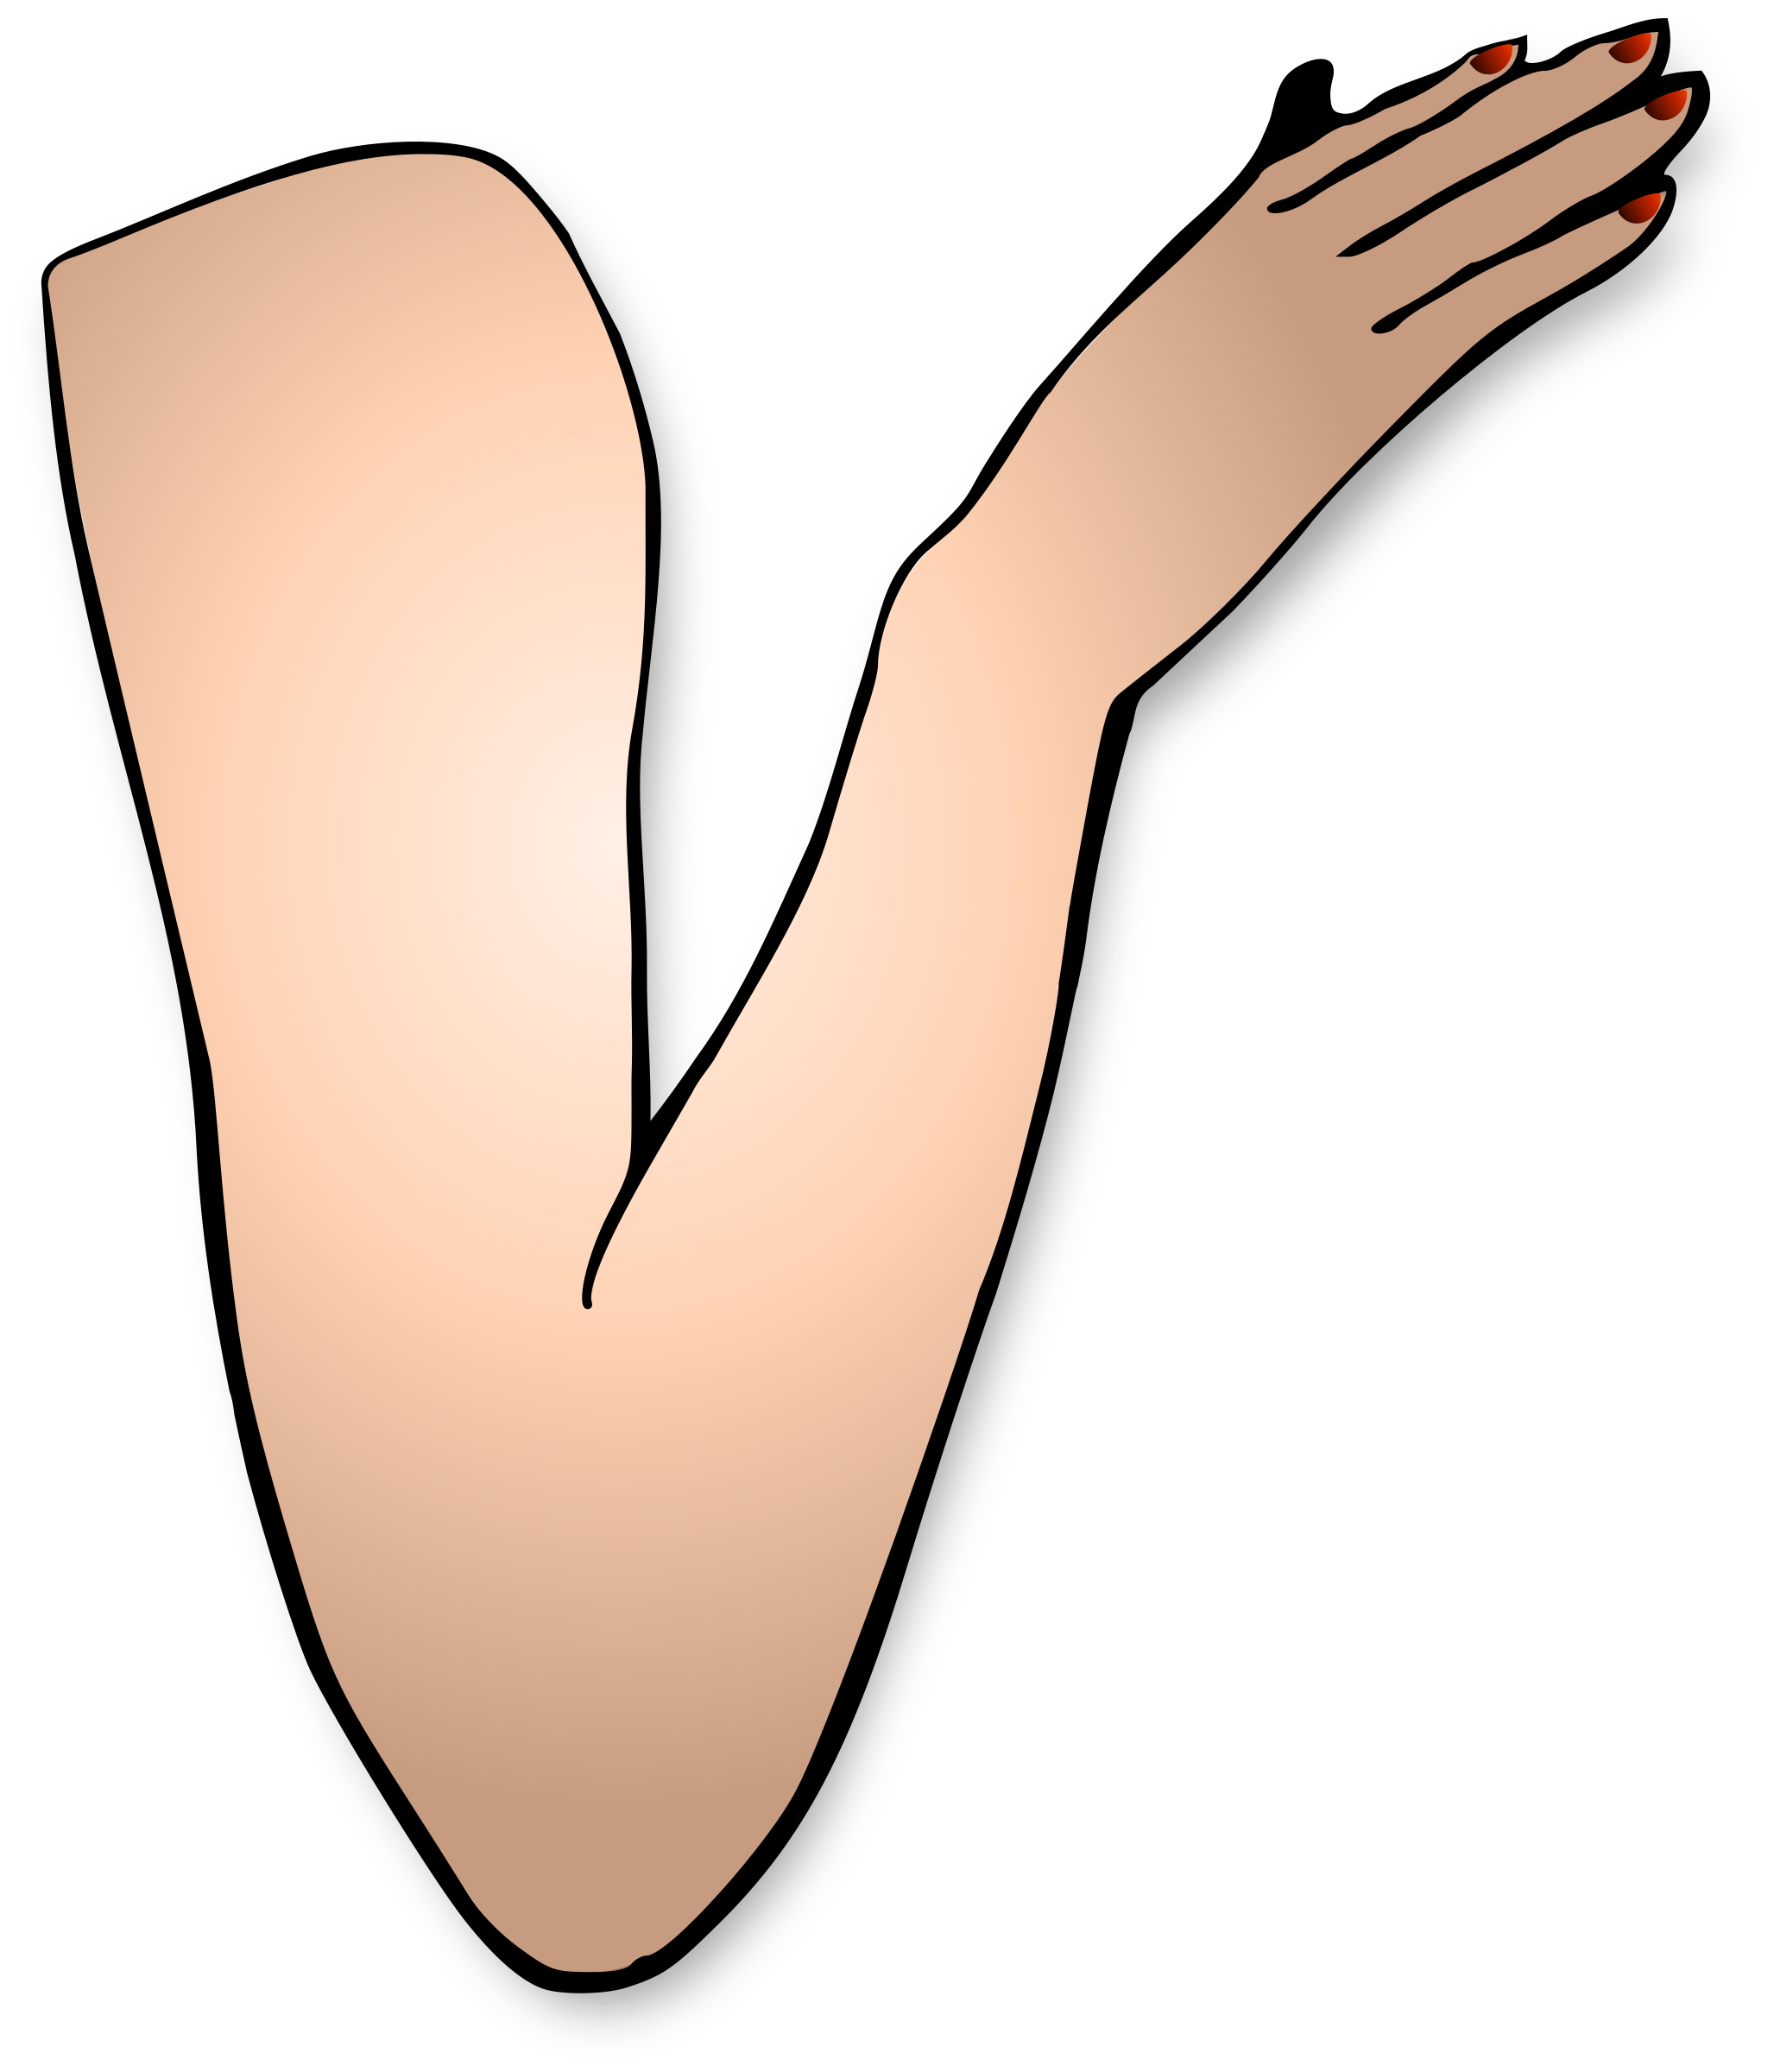 jpg free Arm png images free. Arms transparent